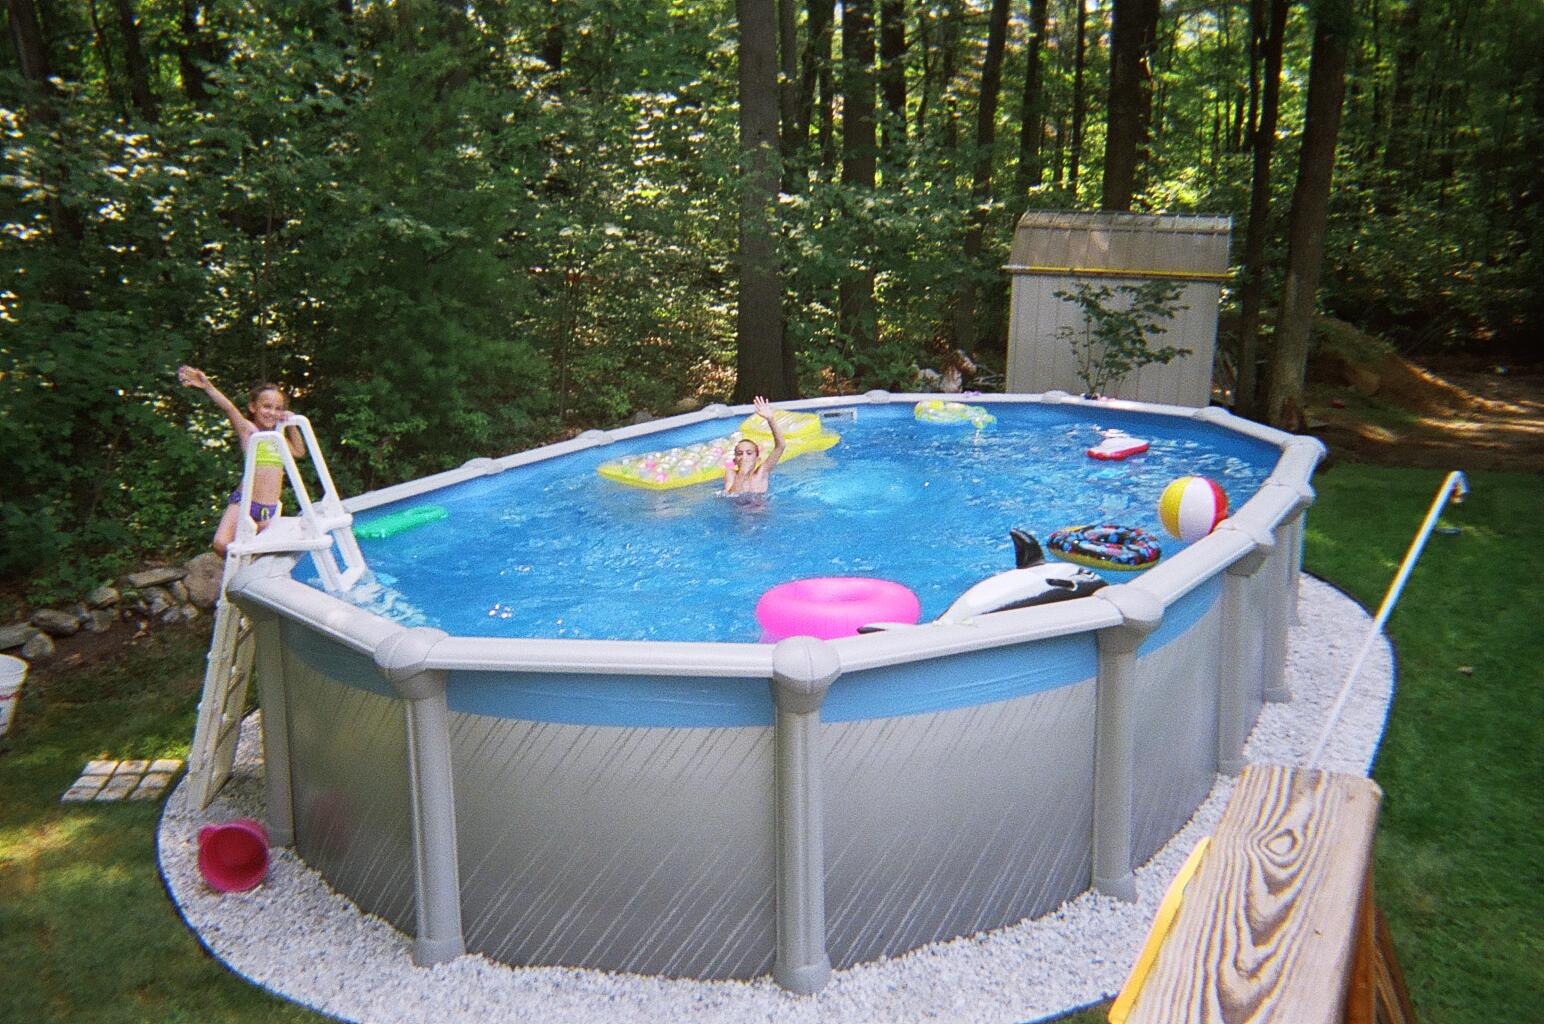 Gorgeous Yet Safe Above Ground Pools With Decks In Round Shape : Kids Area With Above Ground Pools With Decks